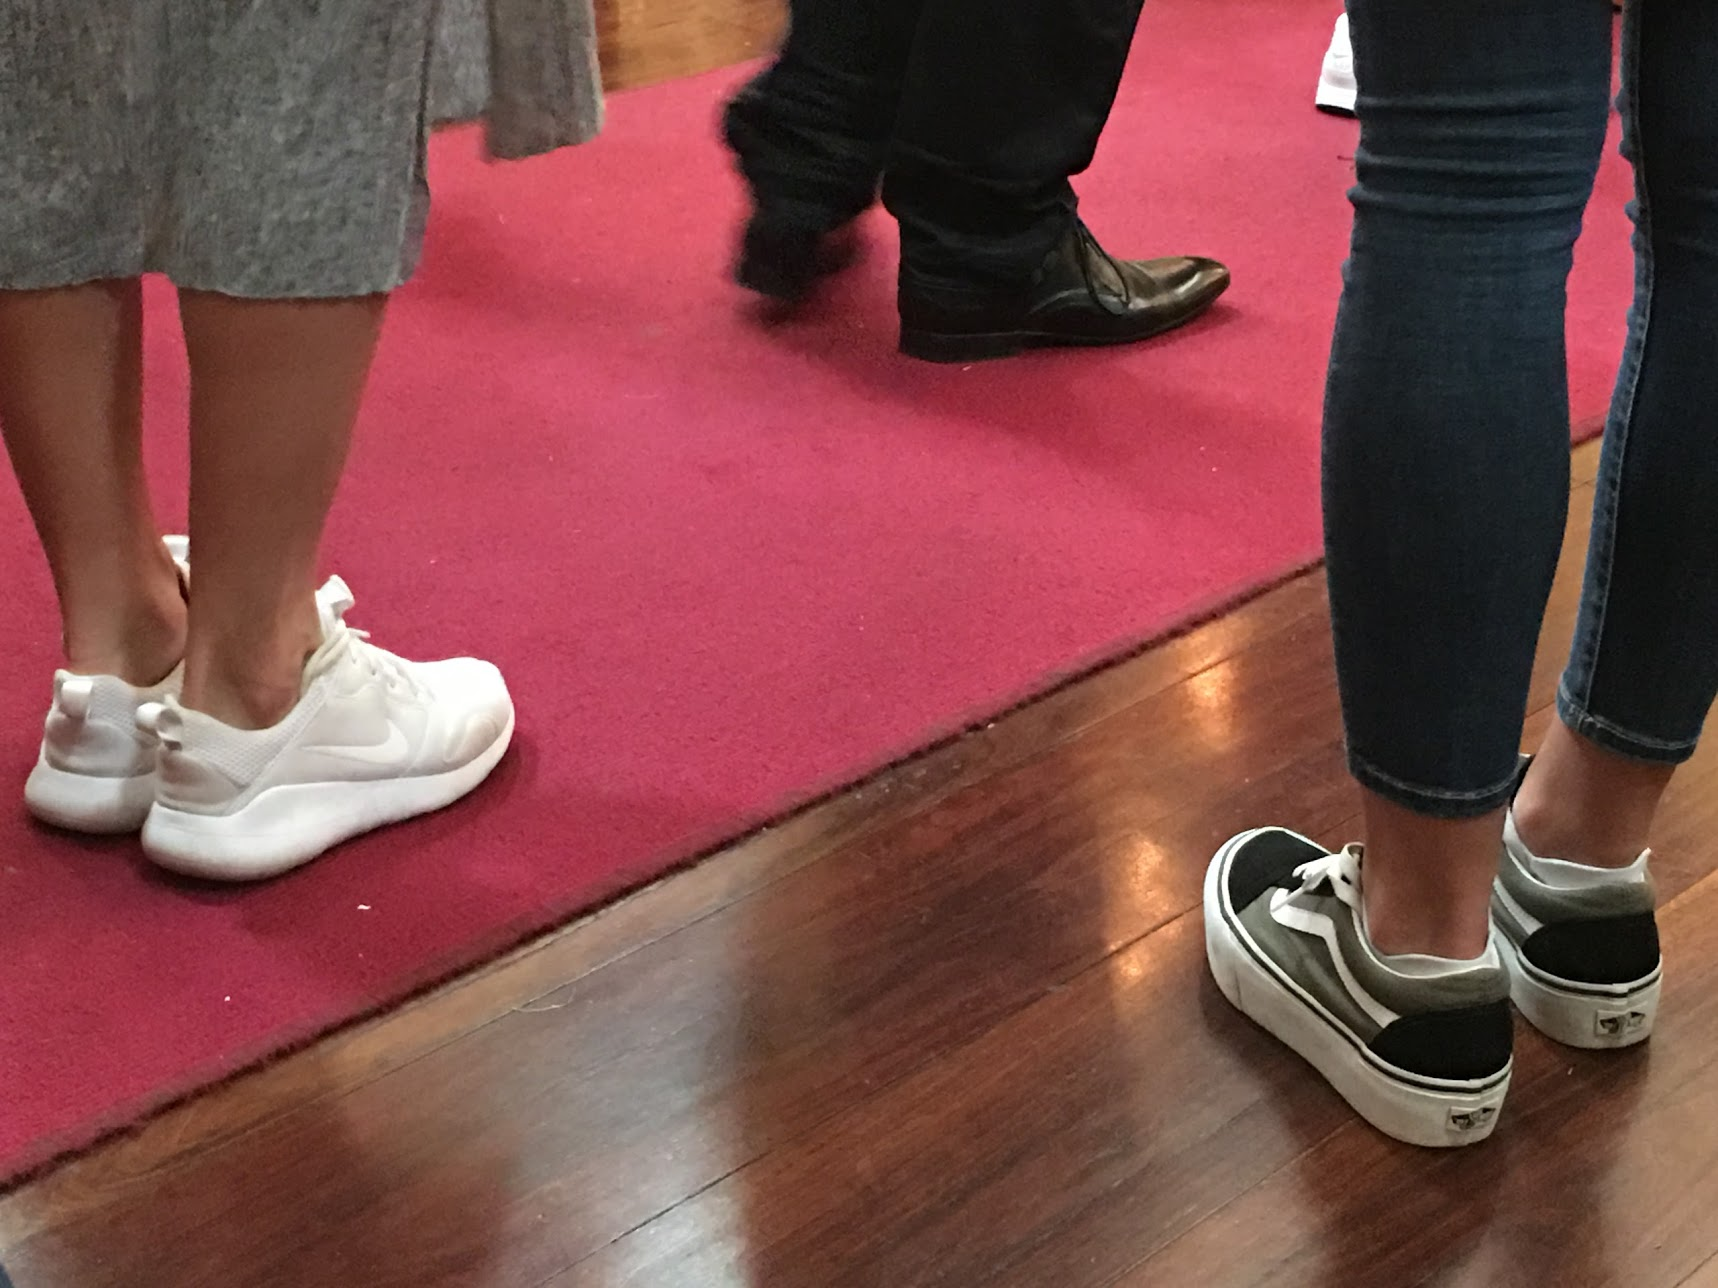 Fabulous footwear at Pokrov Russian Orthodox Cathedral at Christmas, Jan 2018 - photo by C.Schieve